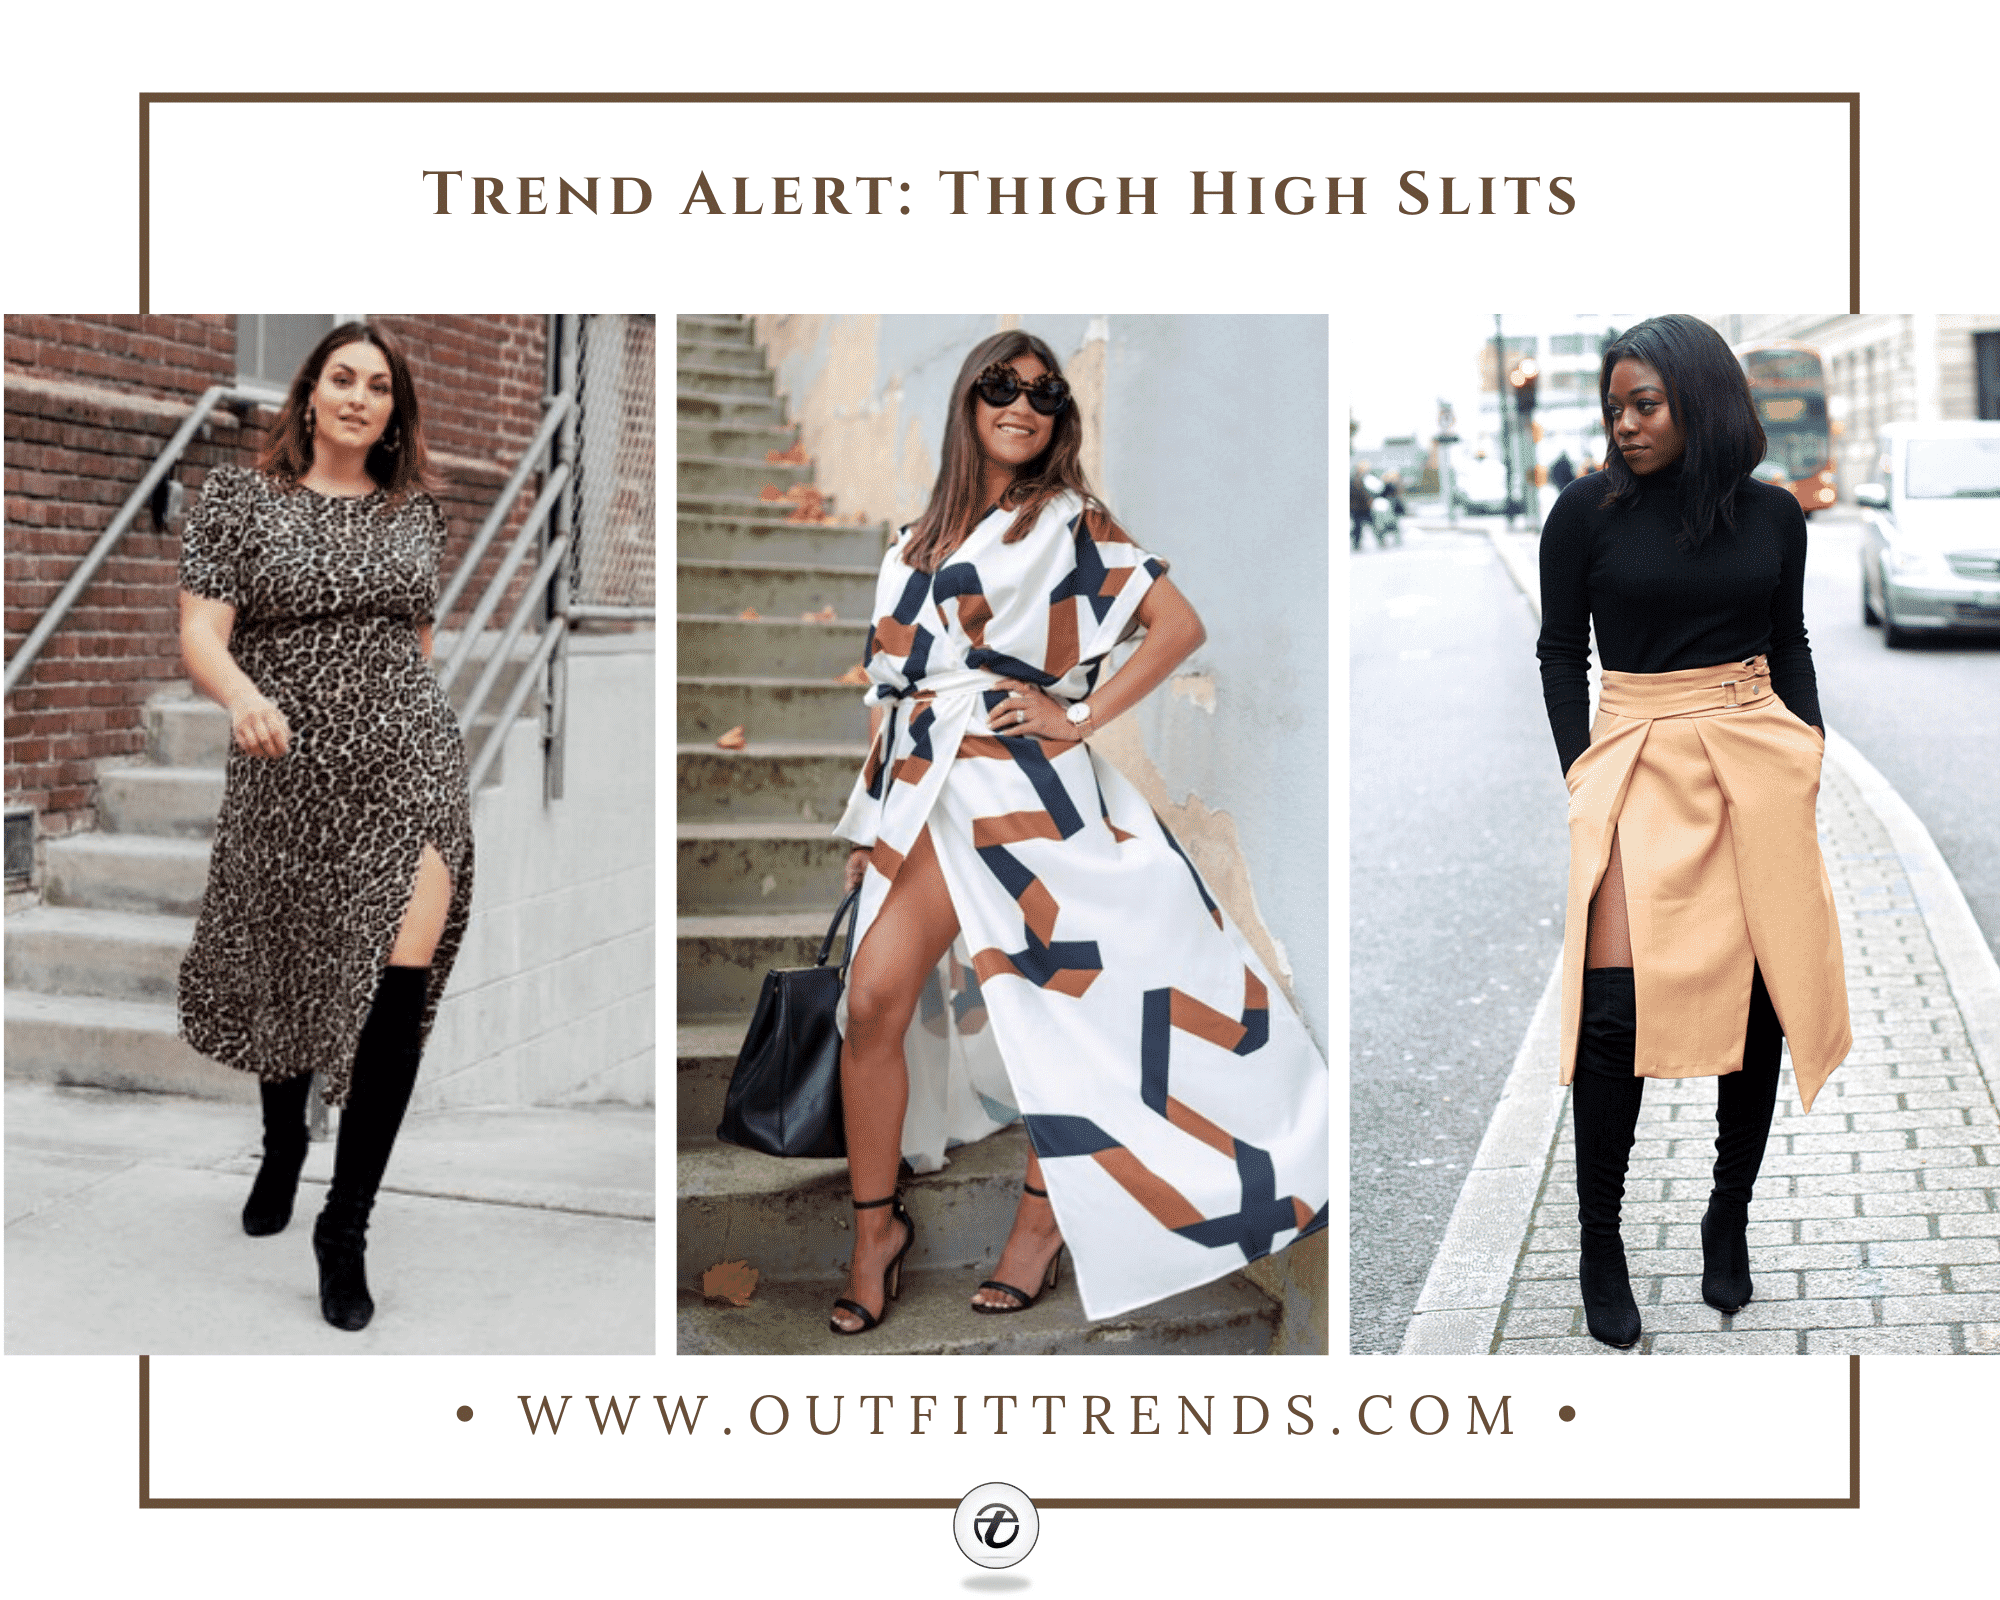 How to Wear Thigh-High Slits – 48 Ways To Rock High-Slits